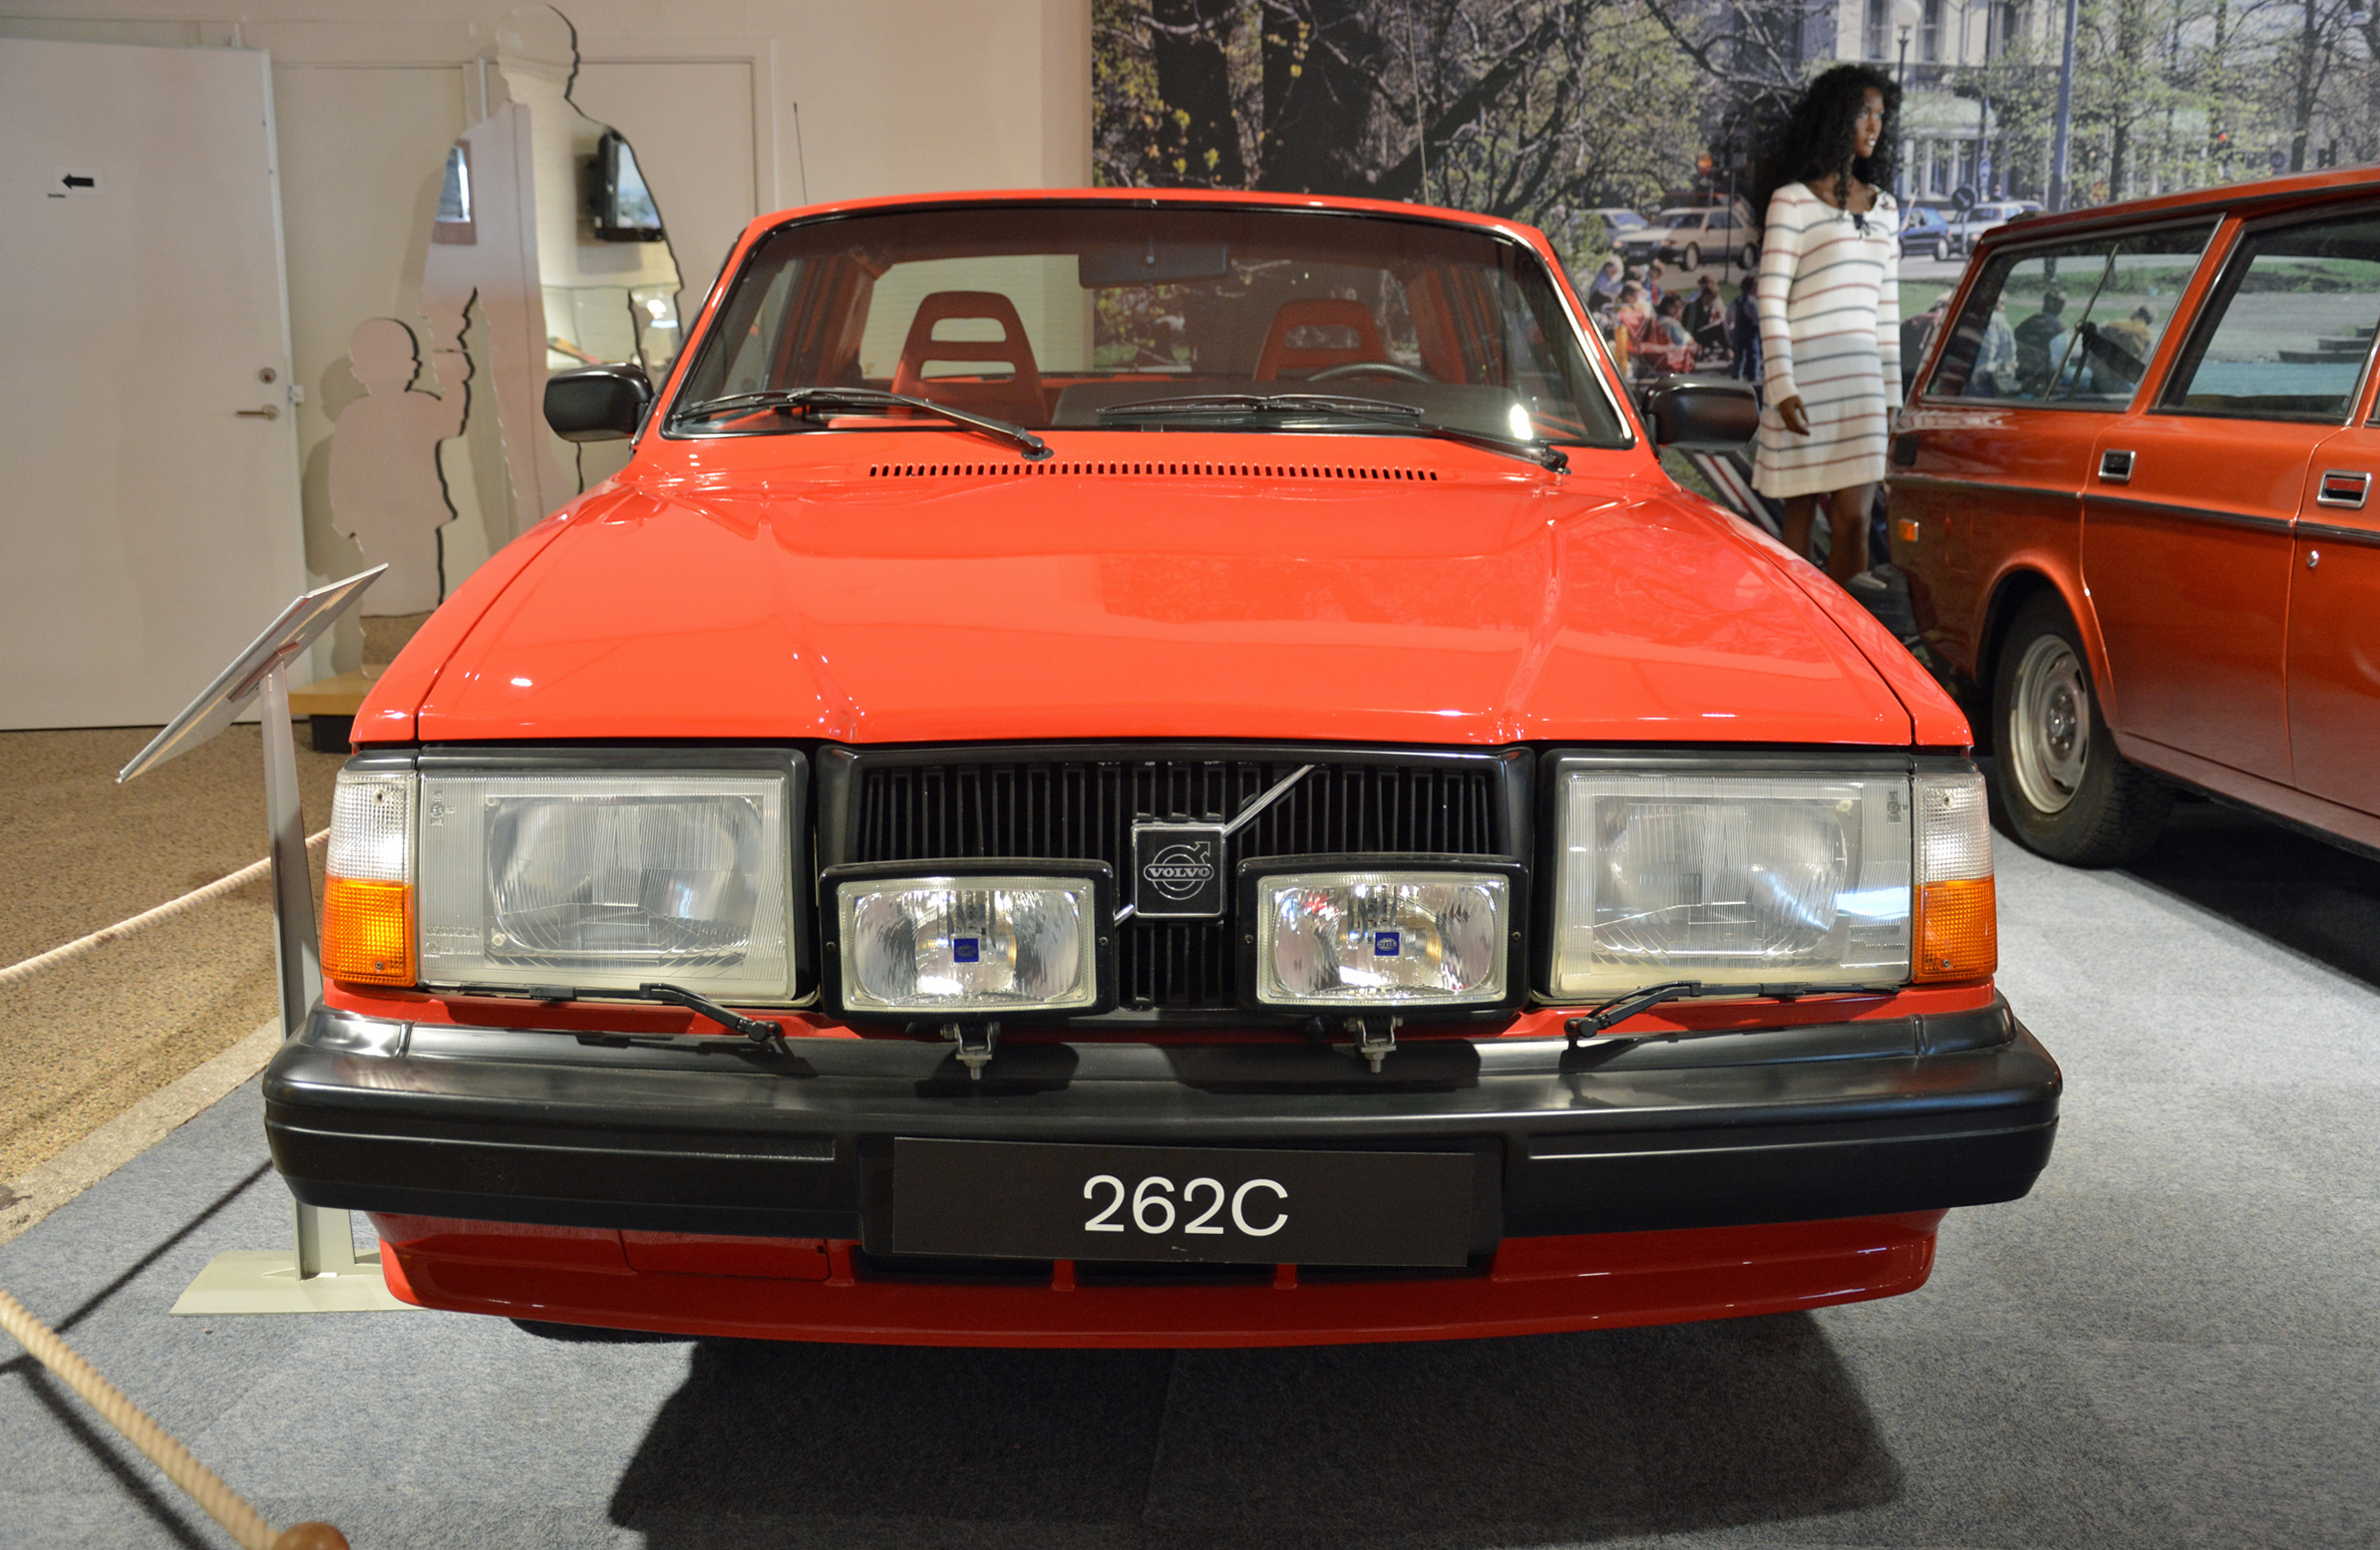 saab museum volvo 262c front view